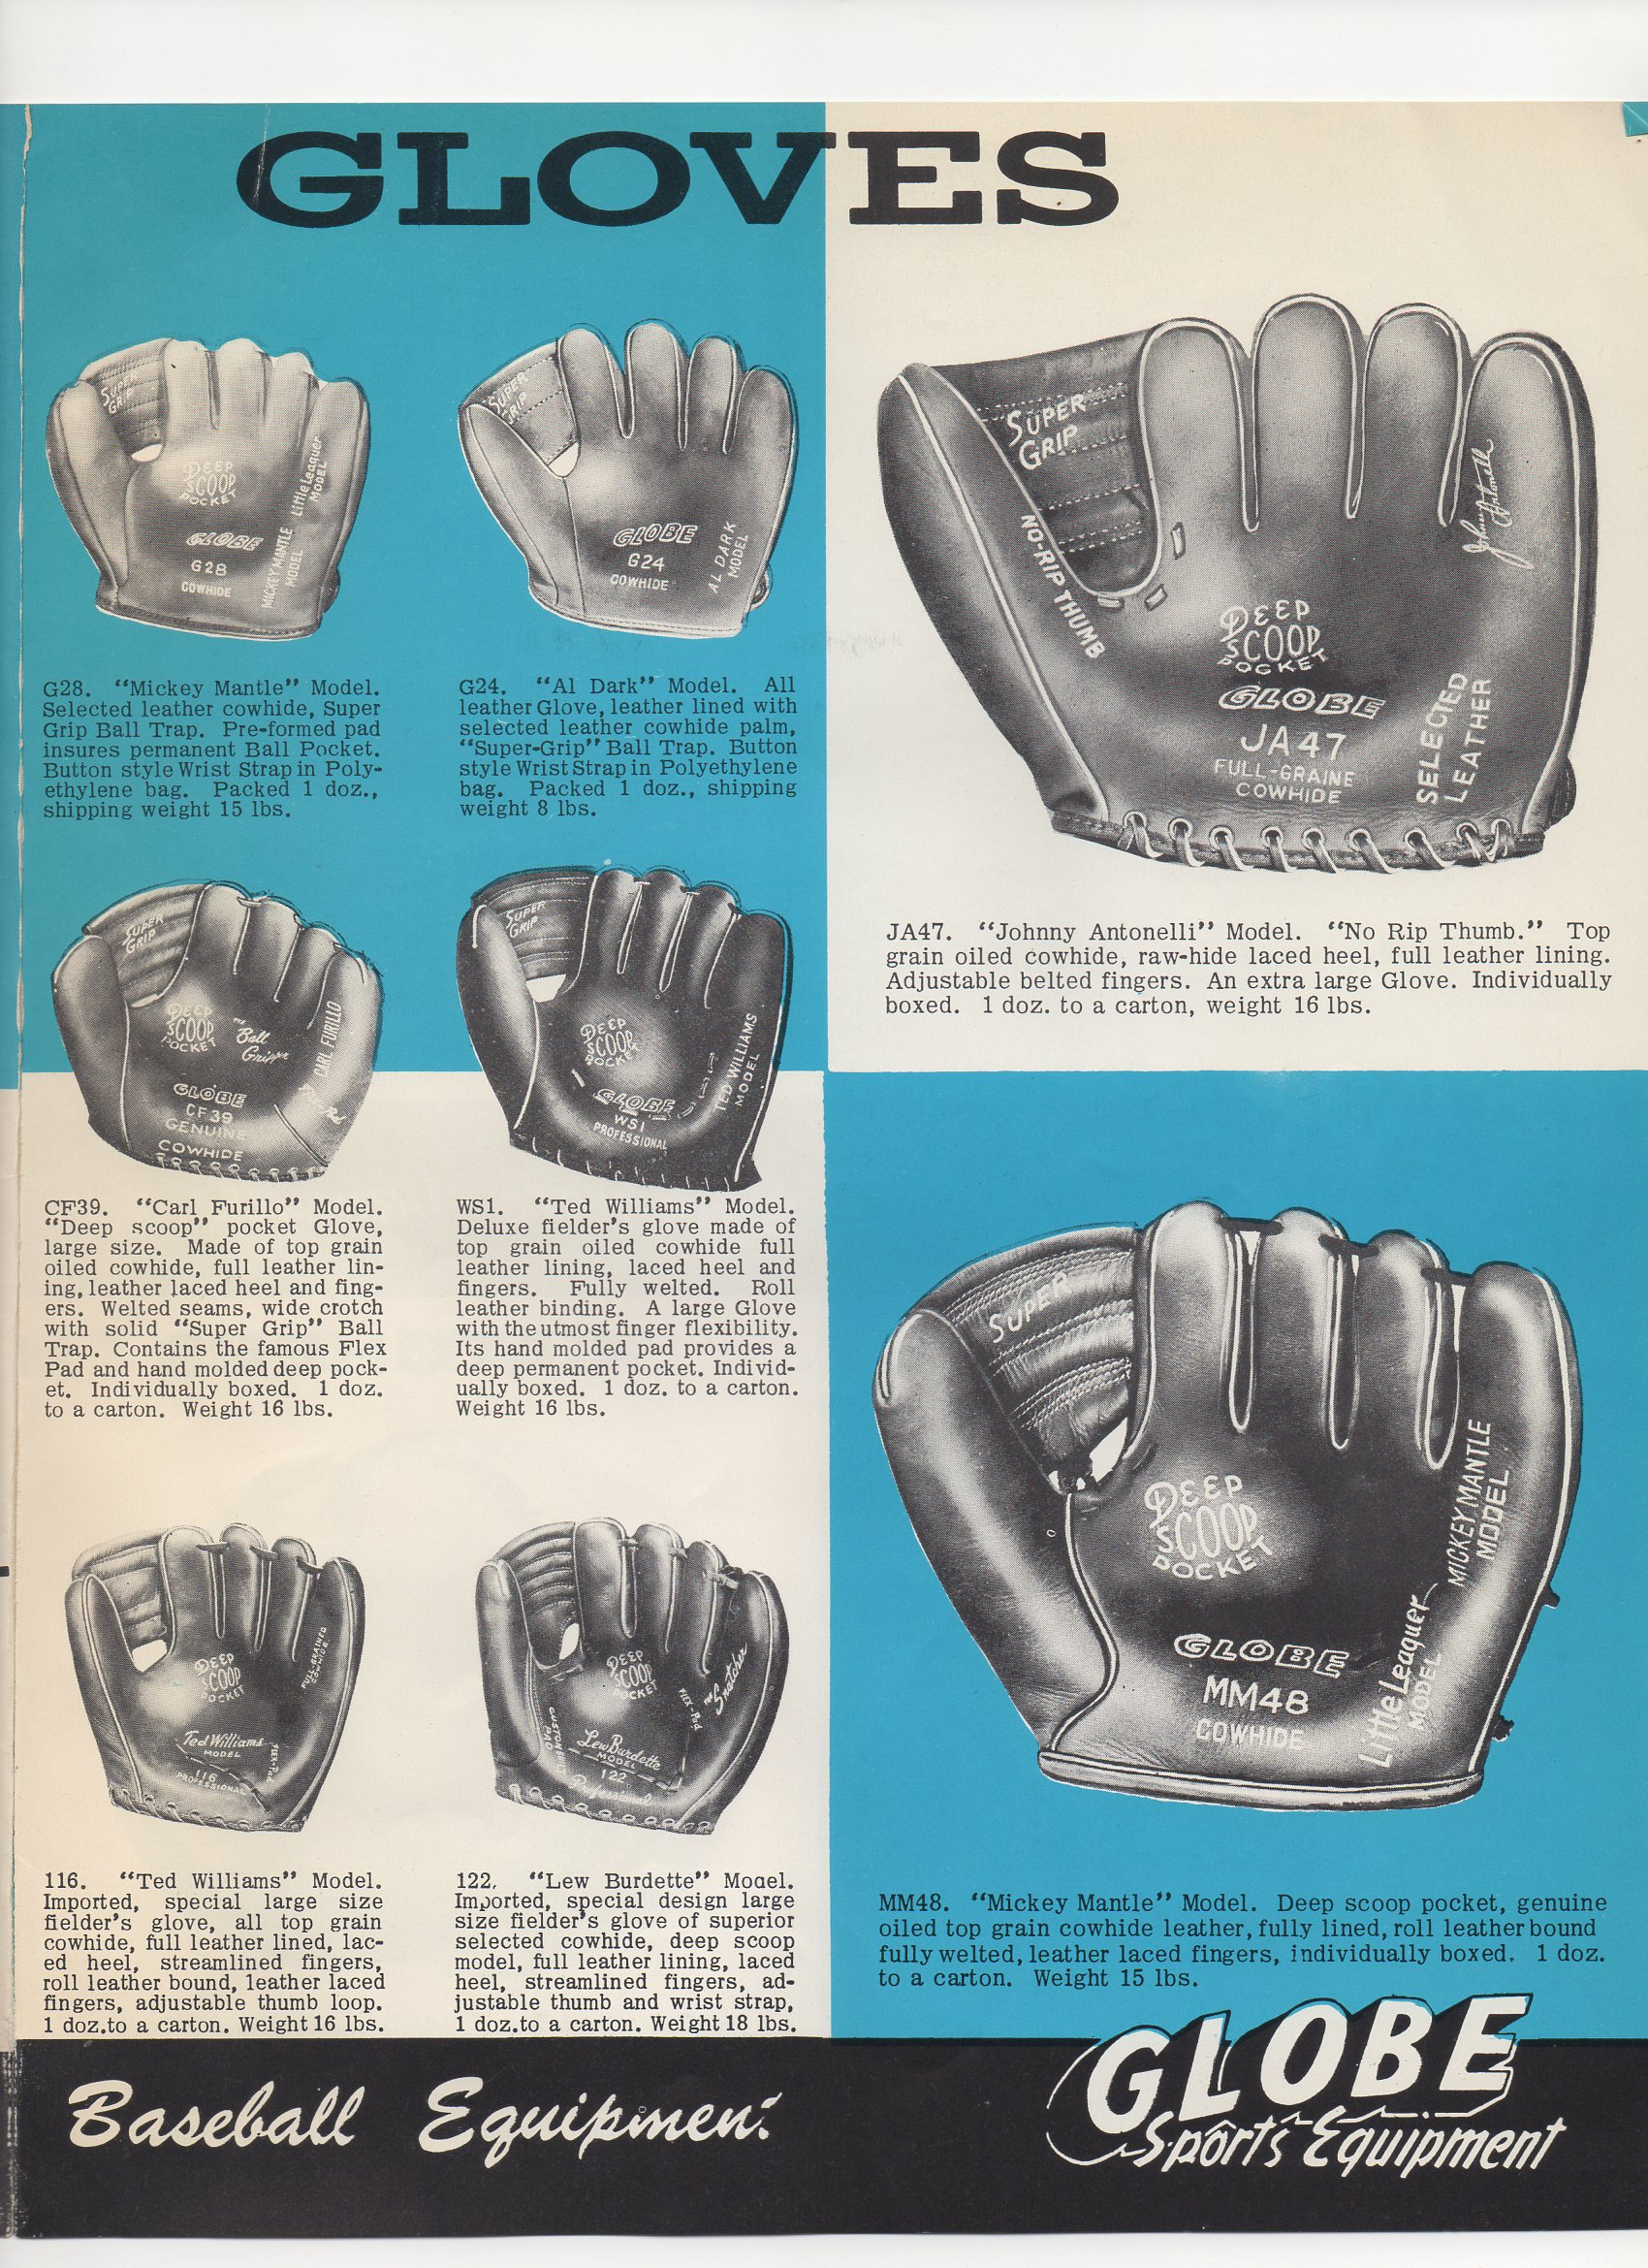 1958 globe sports equipment, spring and summer